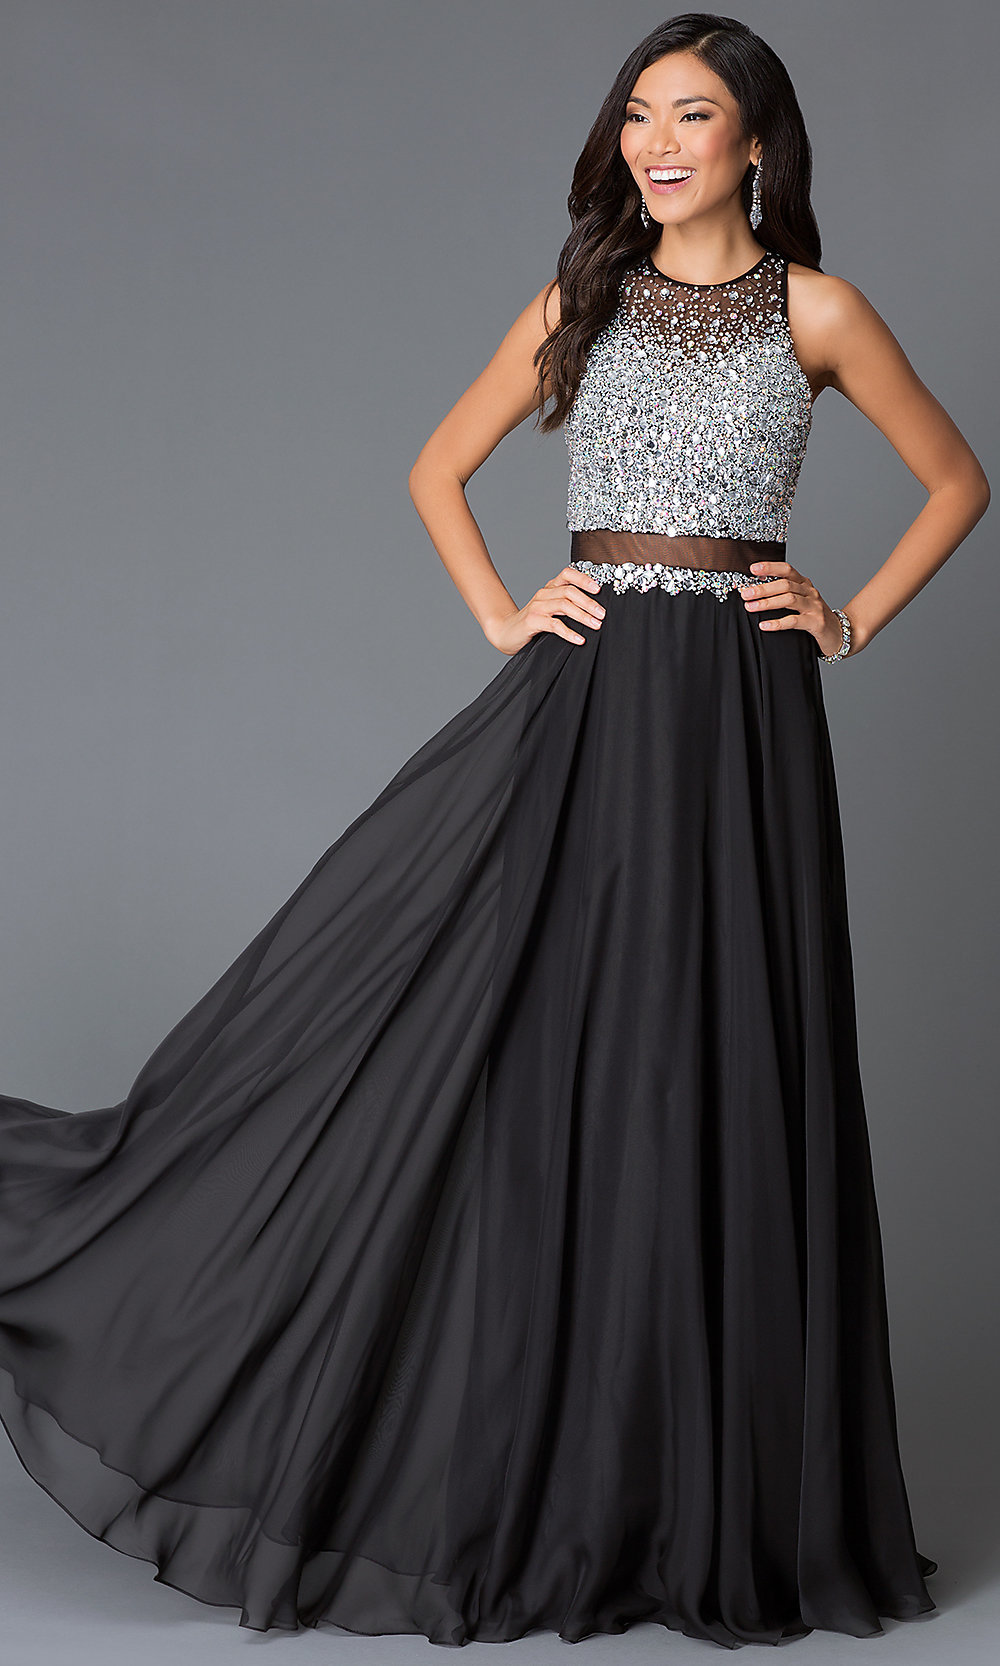 Beaded Sleeveless Illusion Long Dress Promgirl